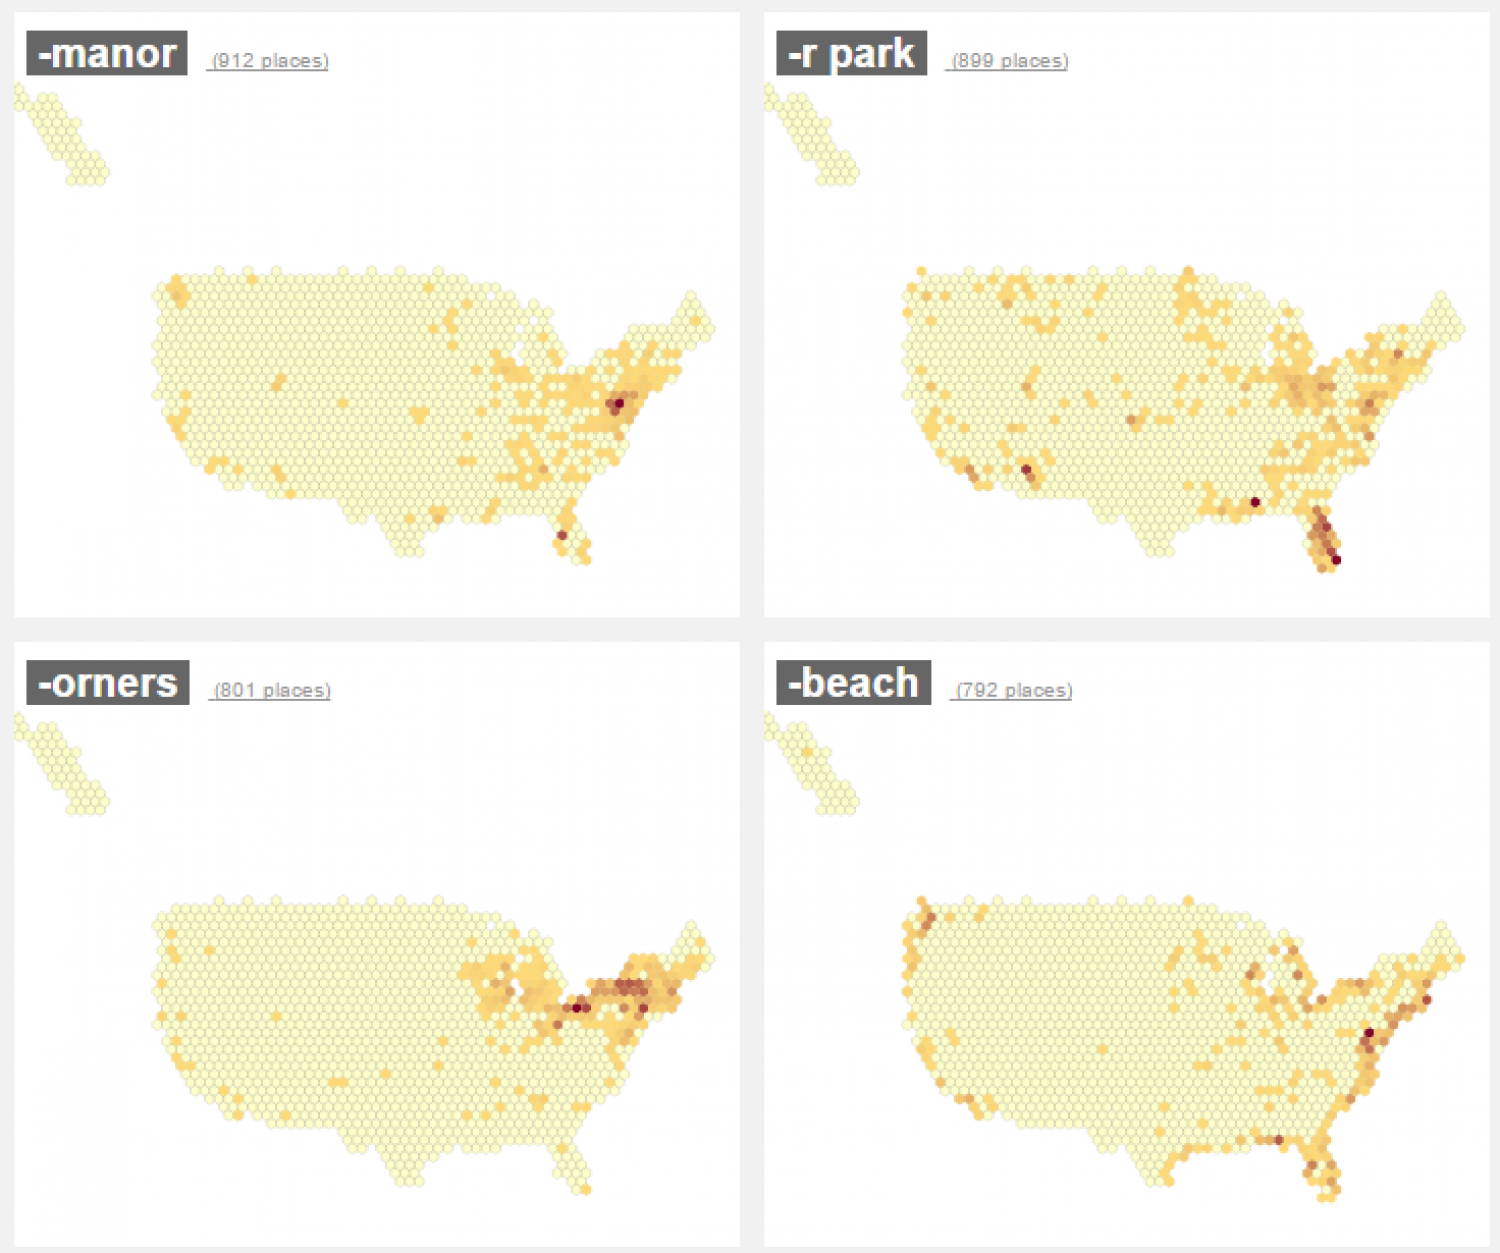 Density of populated places with common suffixes in U.S. Infographic